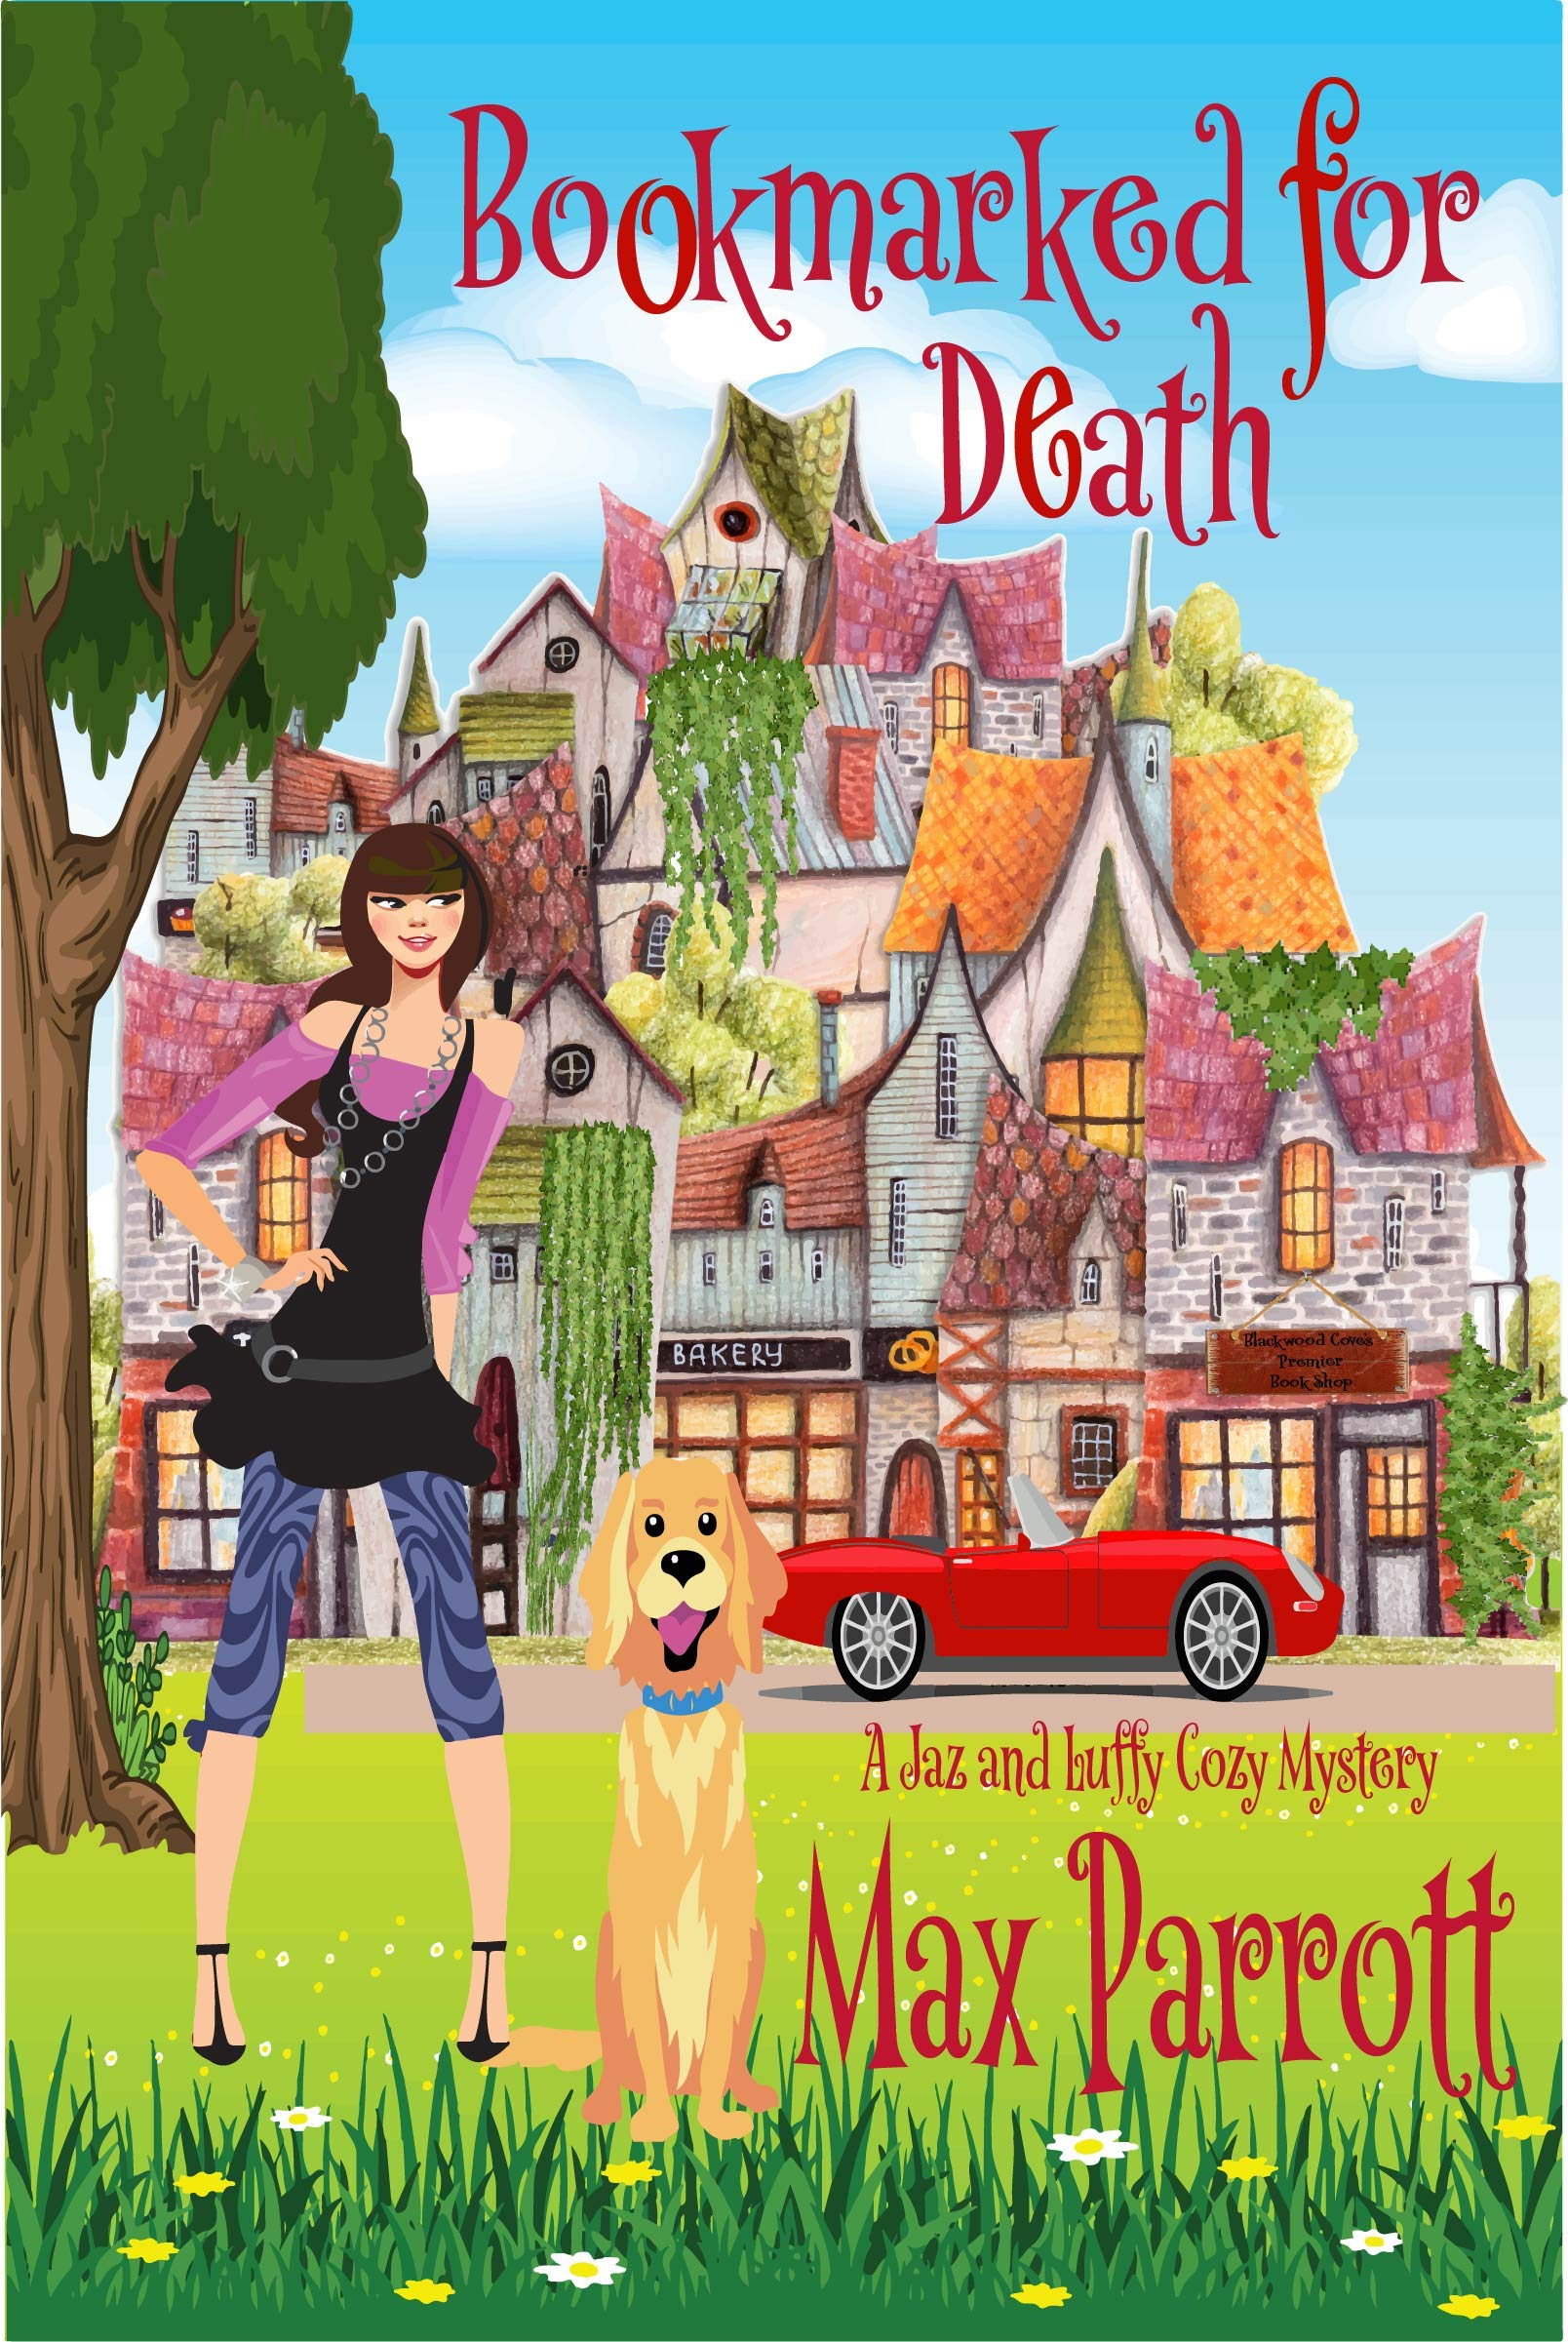 Bookmarked for Death: Psychic Sleuths and Talking Dogs (A Jaz and Luffy Cozy Mystery Book 3)